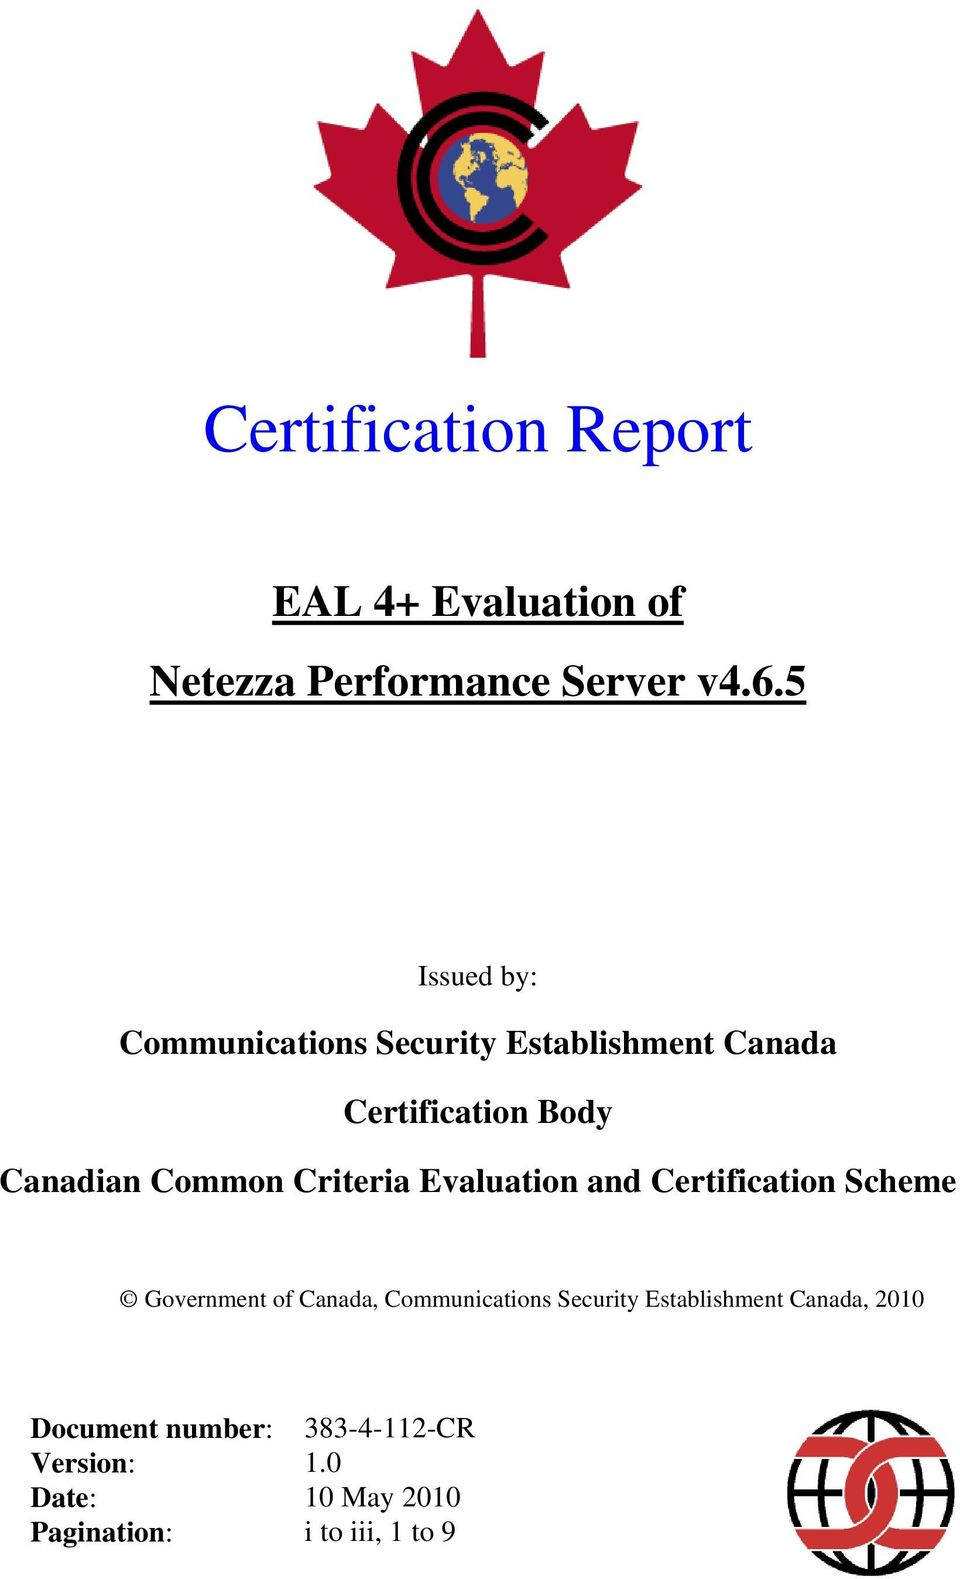 Criteria Evaluation and Certification Scheme Government of Canada, Communications Security